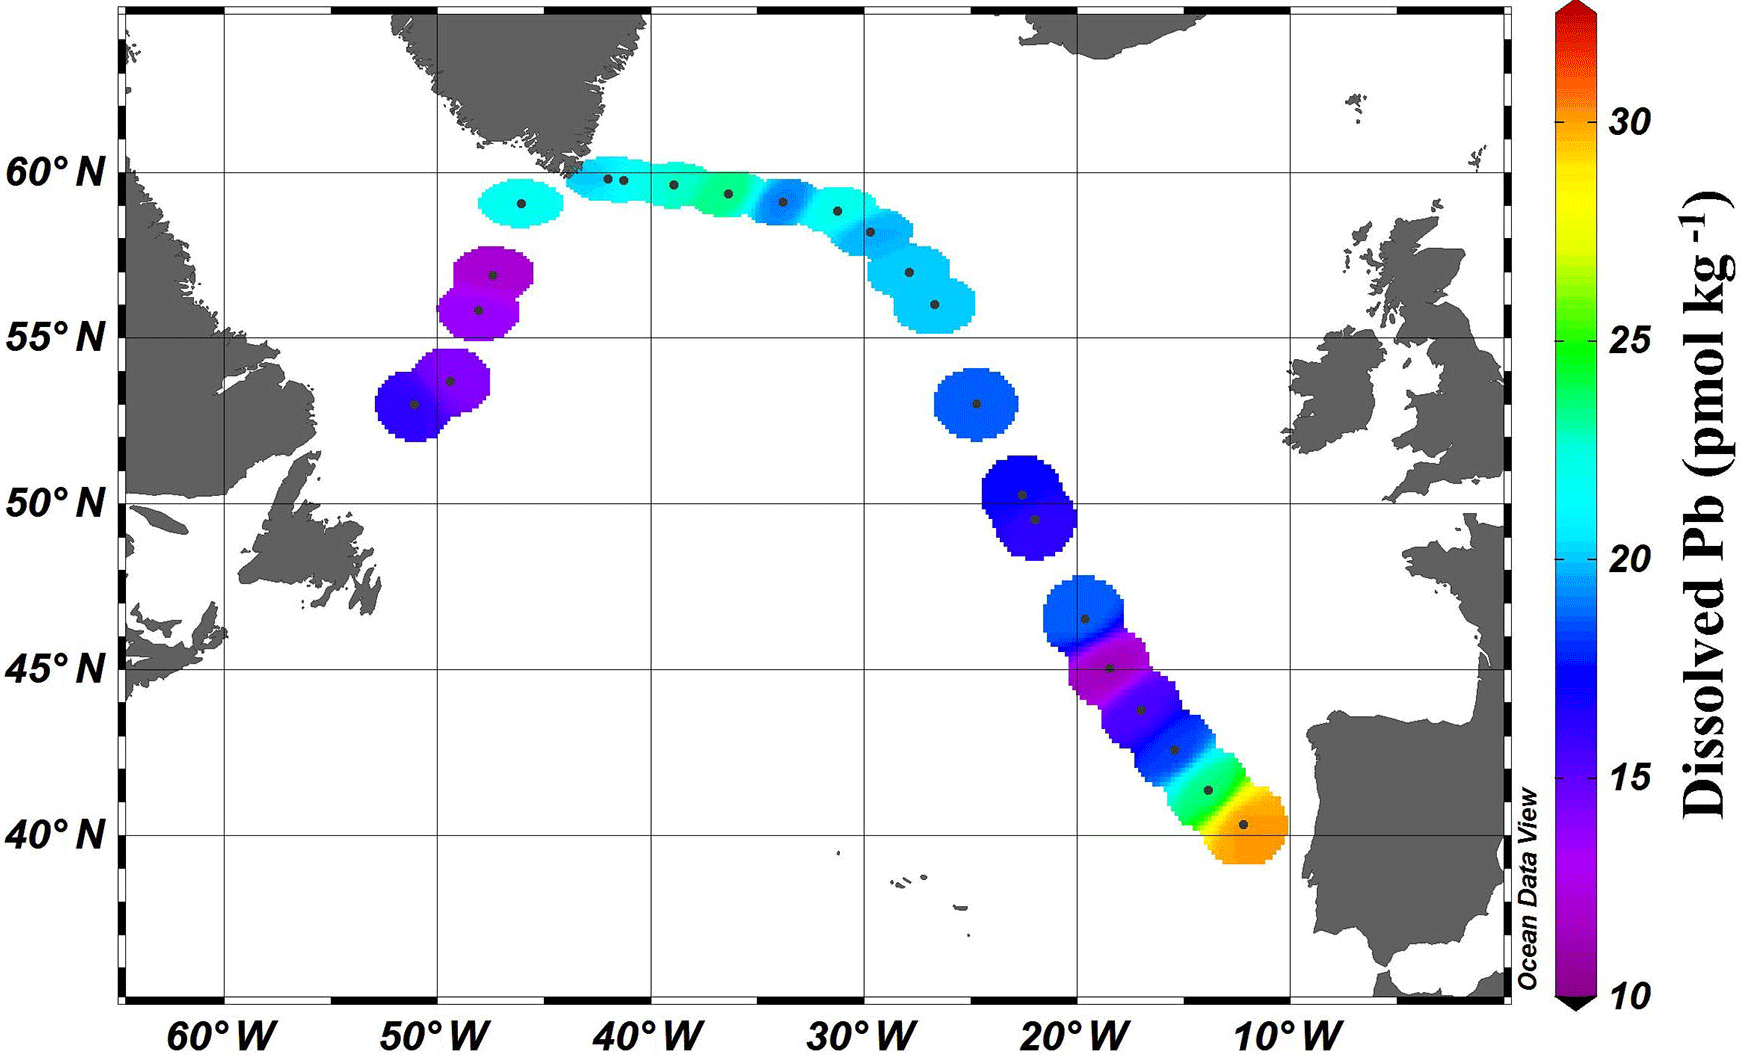 BG - Dissolved Pb and Pb isotopes in the North Atlantic from